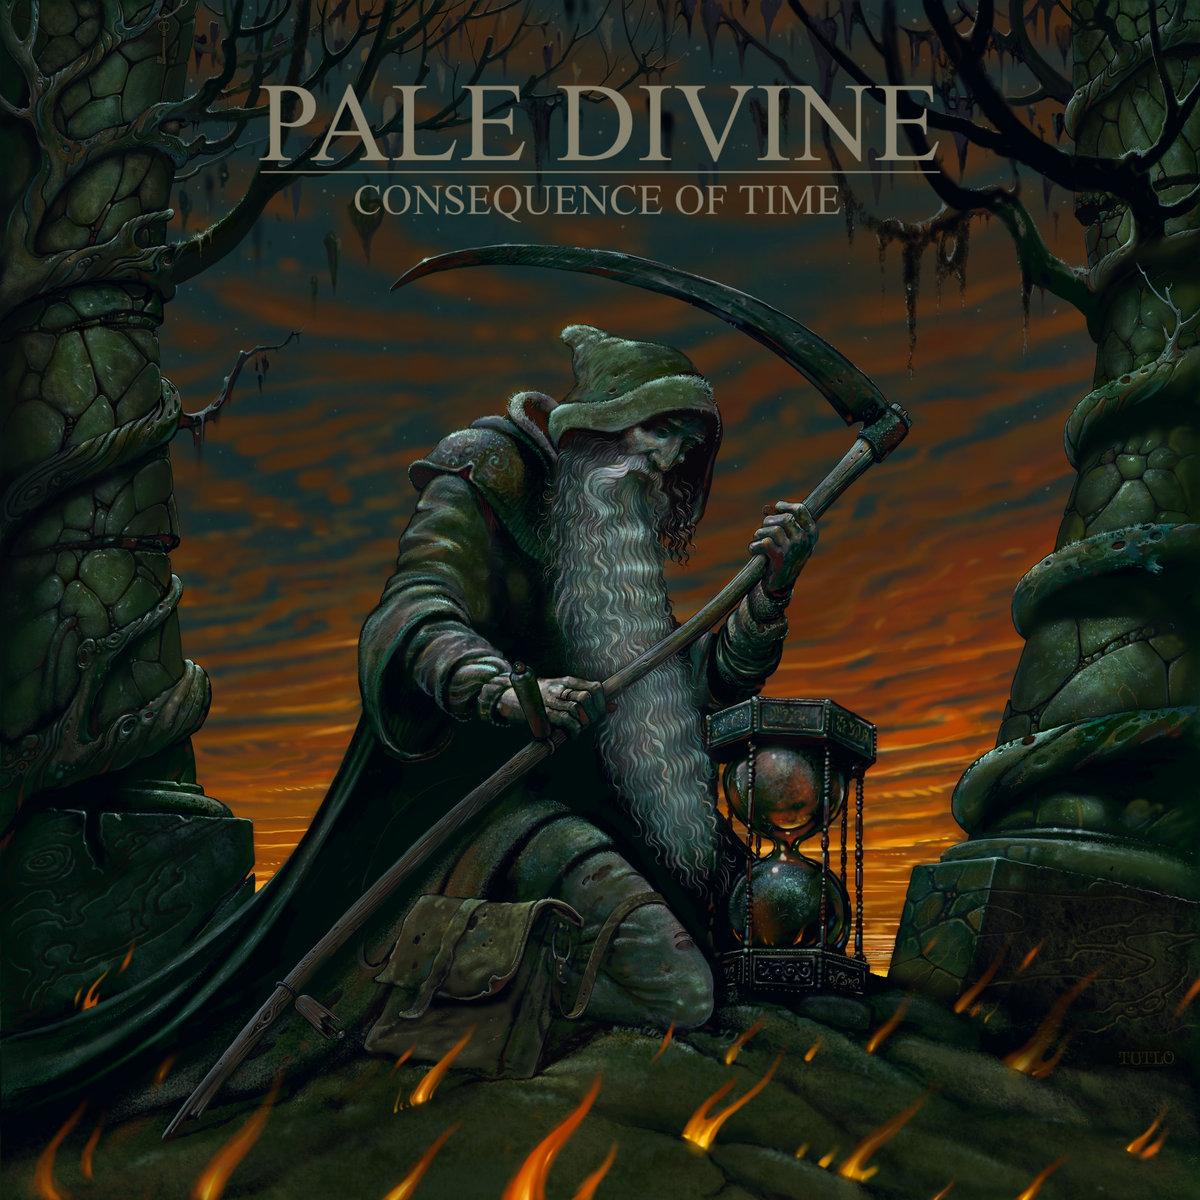 Pale Divine Consequence of Time